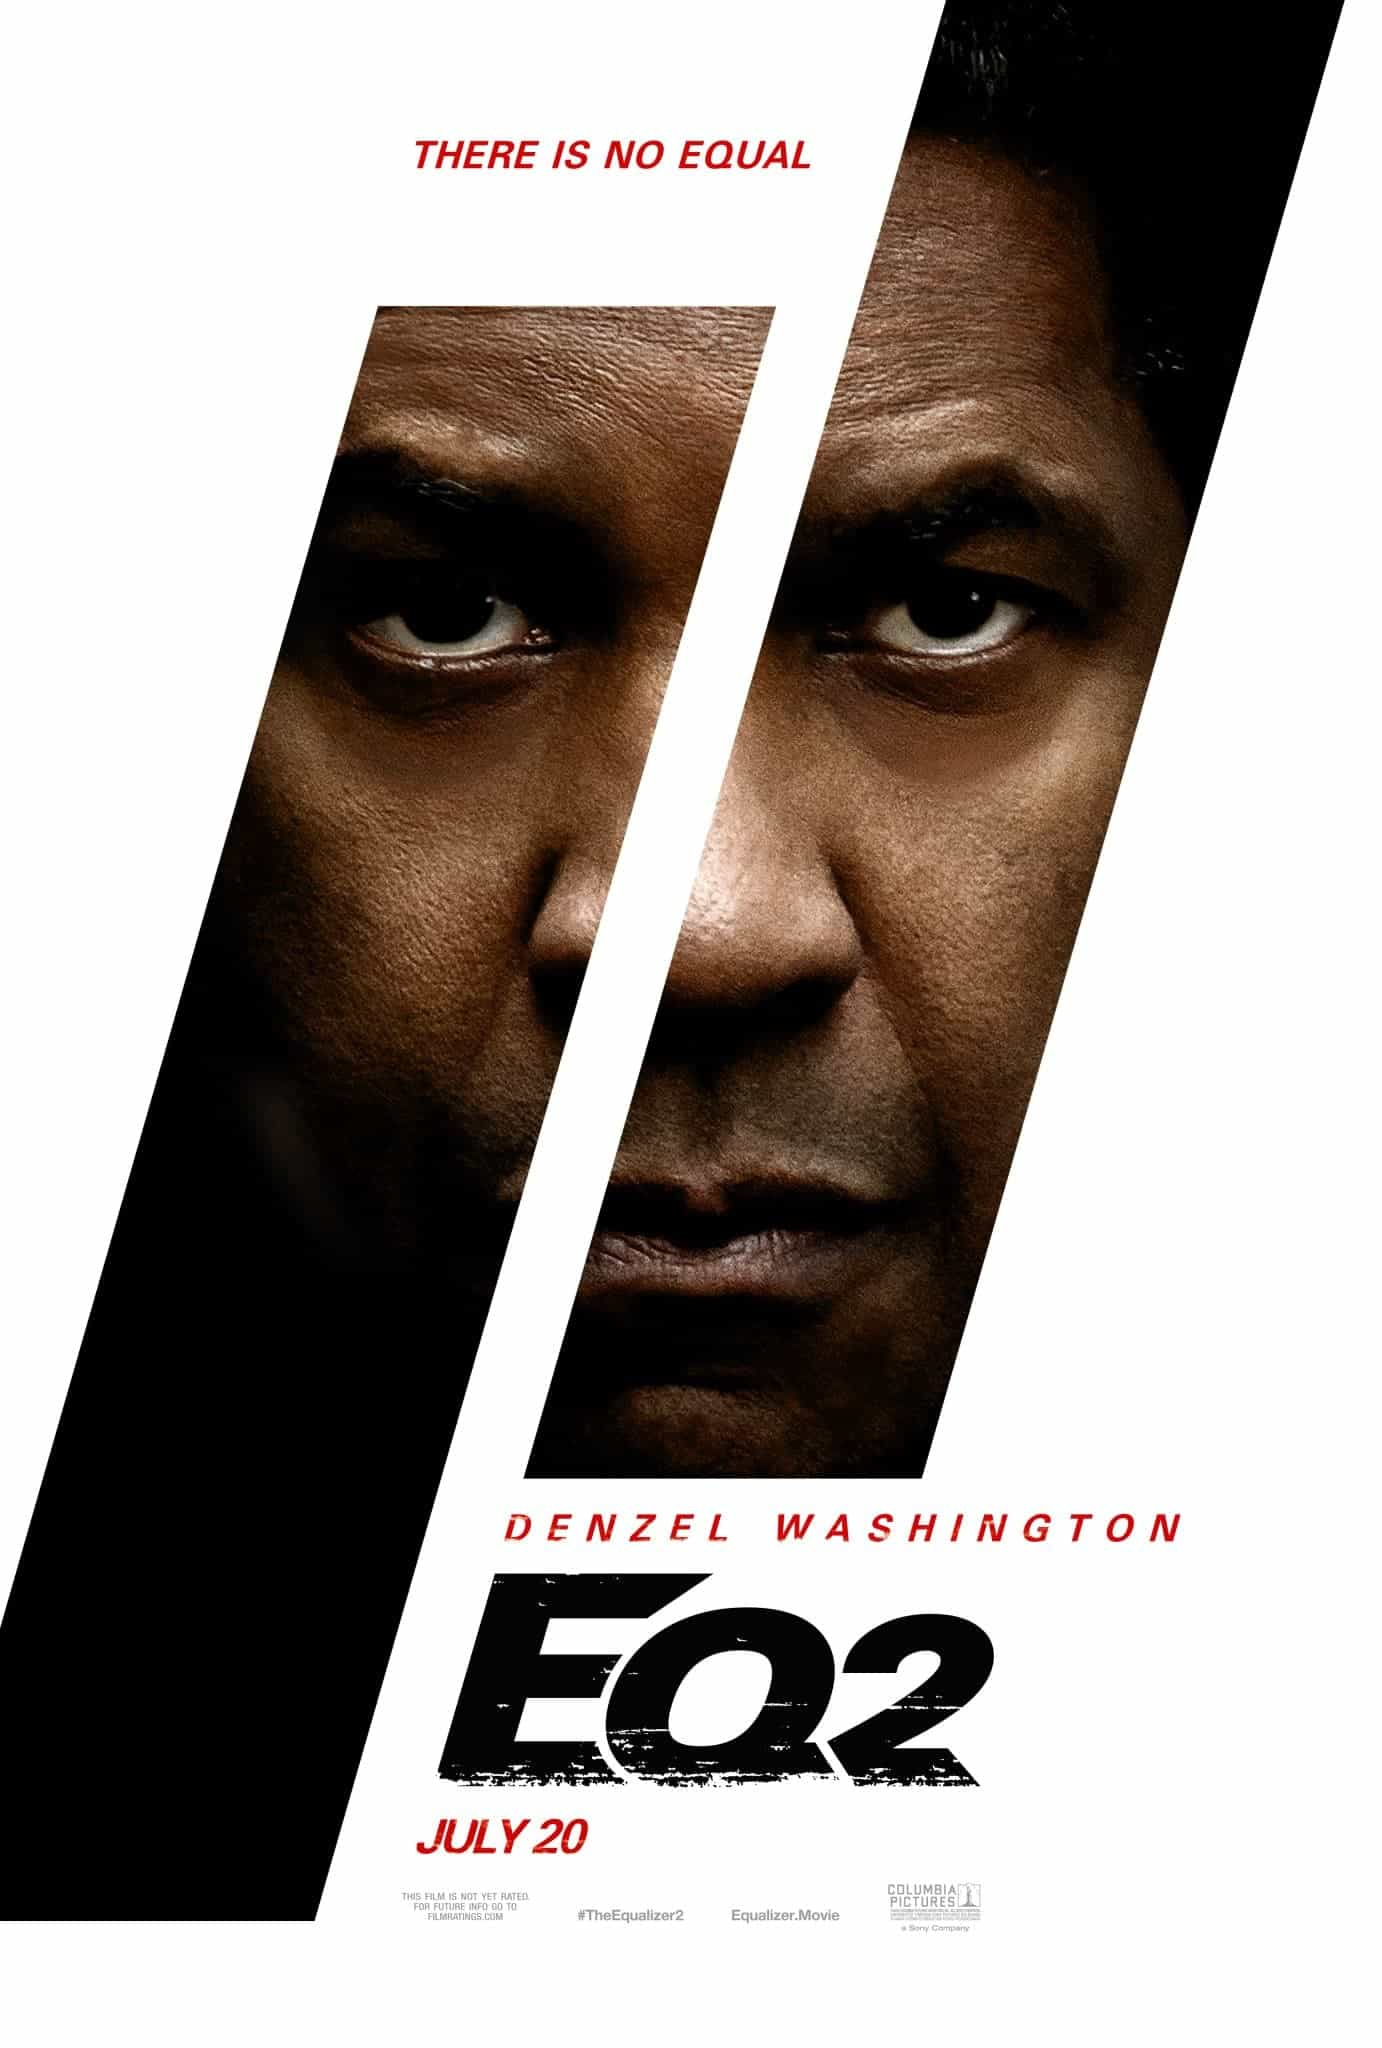 First trailer for Denzel Washington sequel The Equalizer 2